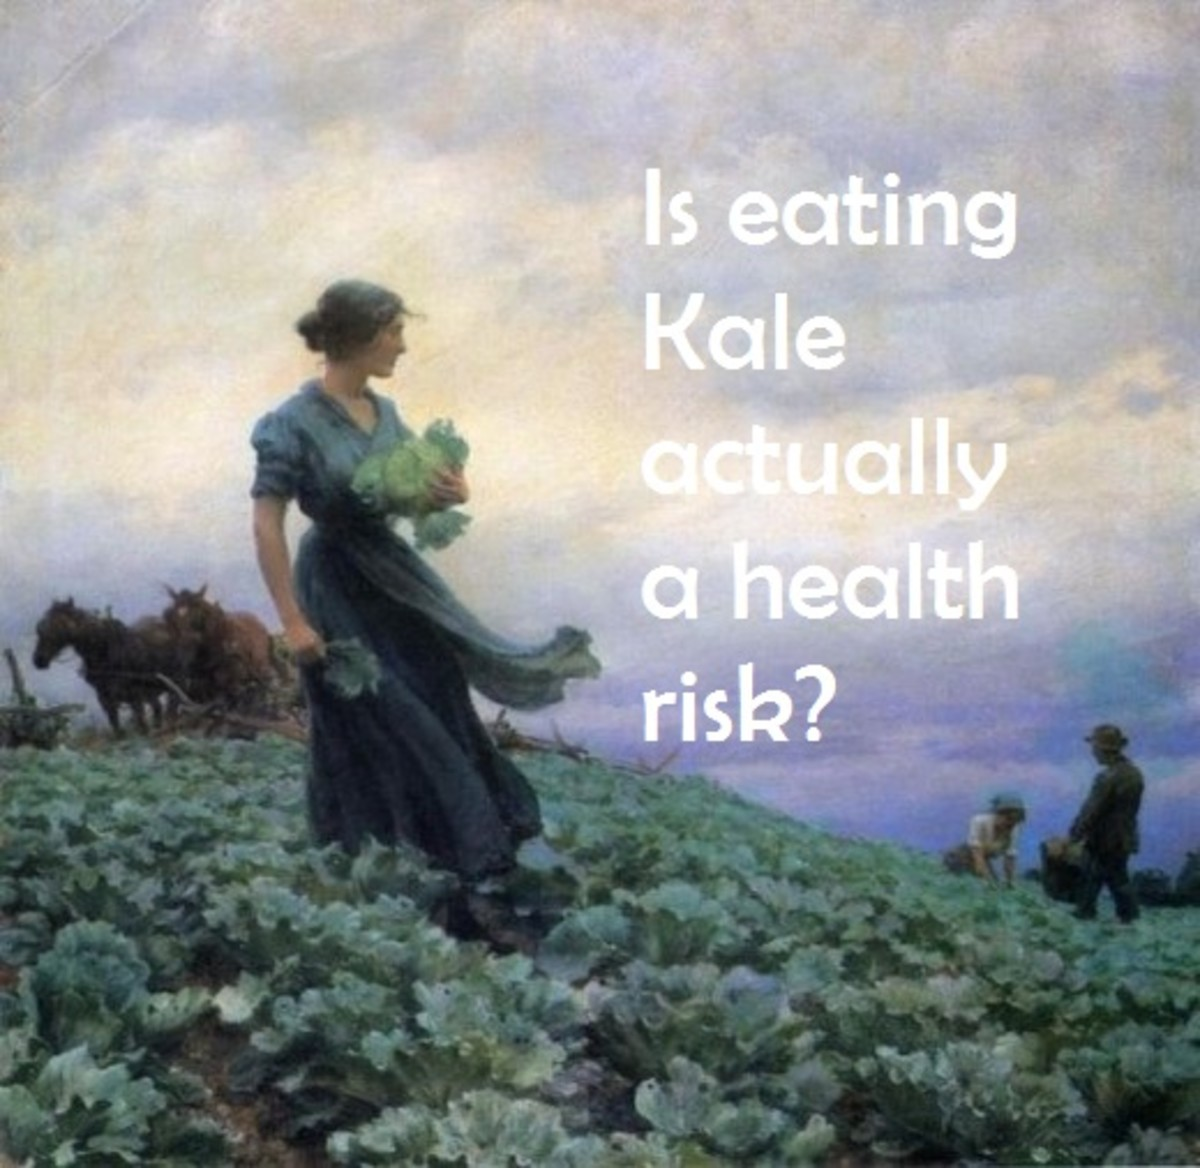 Kale is a part of the cabbage family and has been around for thousands of years. But can you have too much of it?